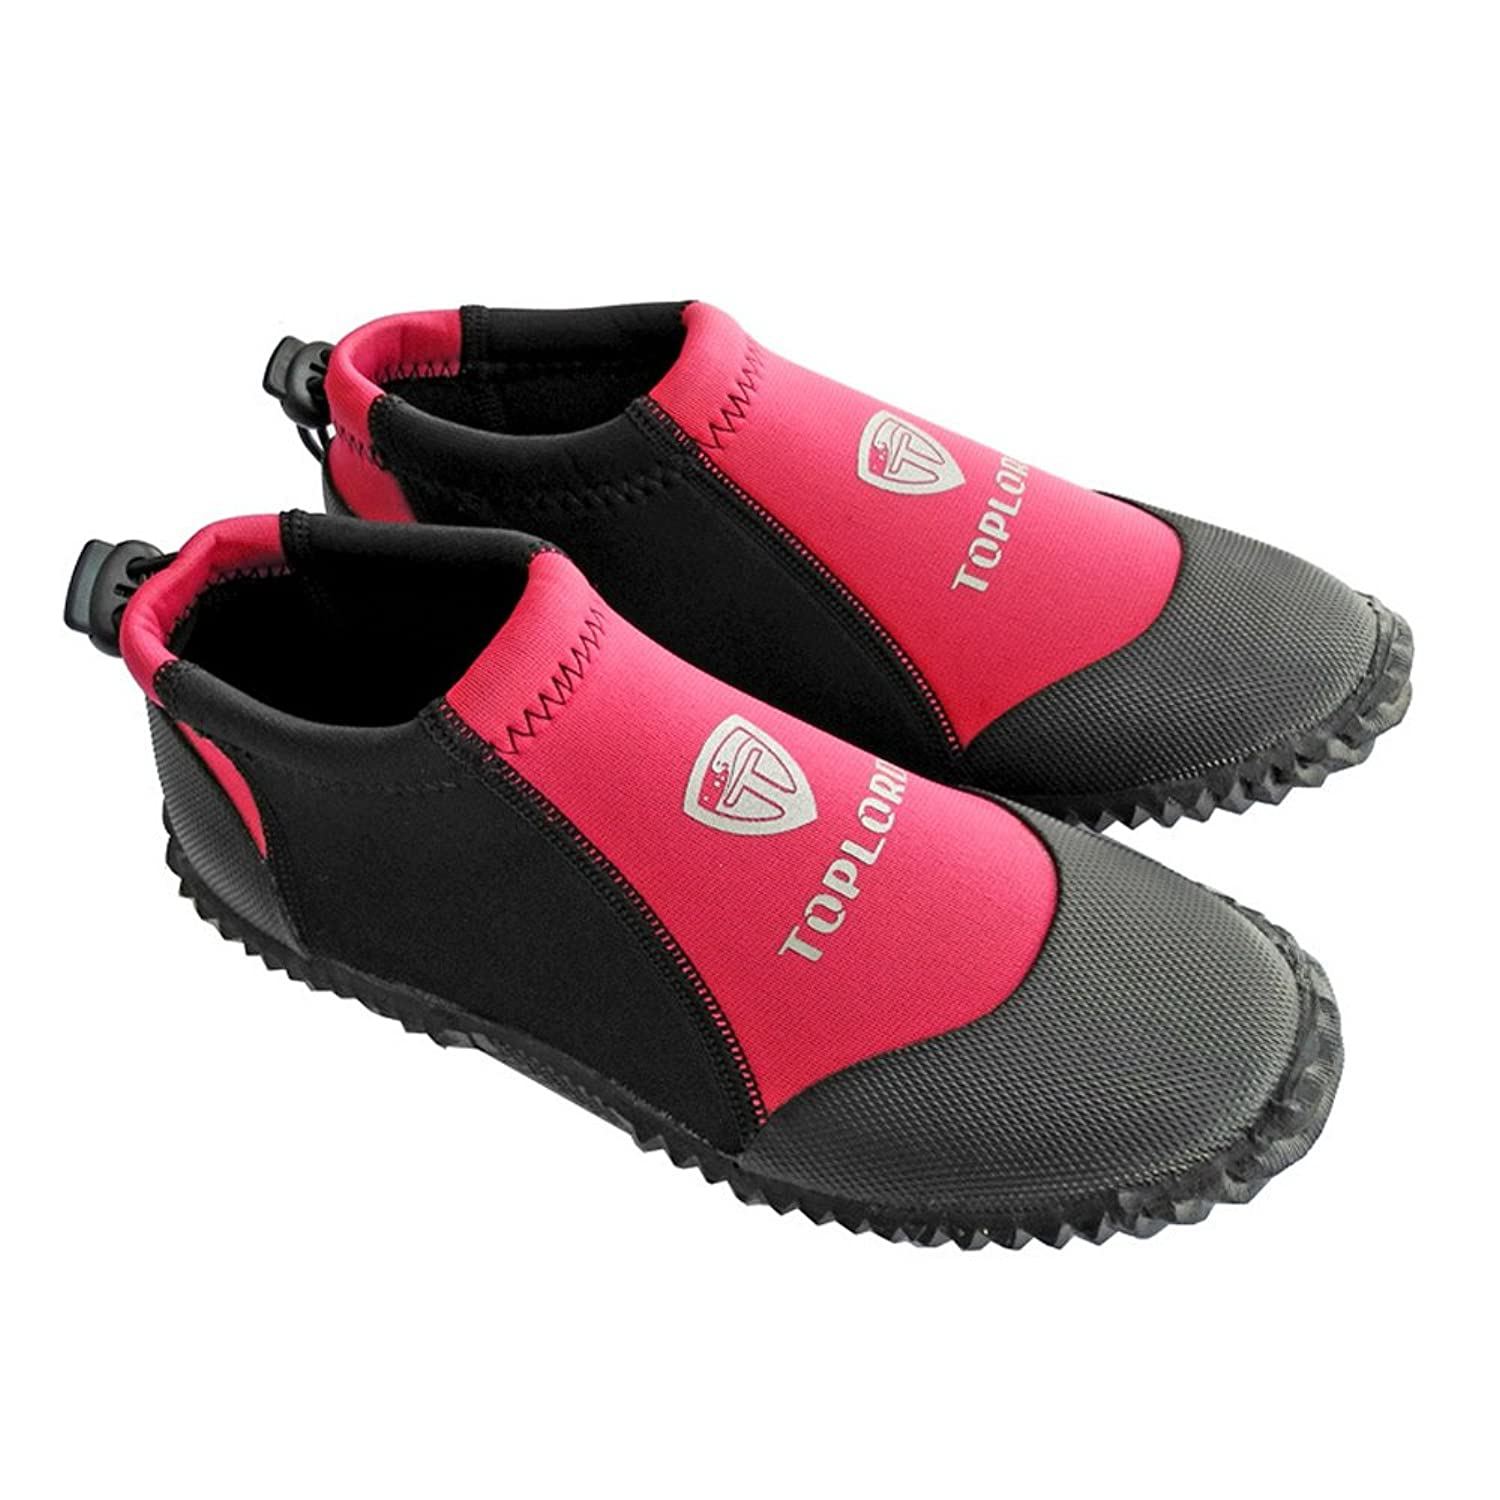 A Point Snorkeling Suit Premium Neoprene 3mm Low Top Pull On Boot Water Shoes